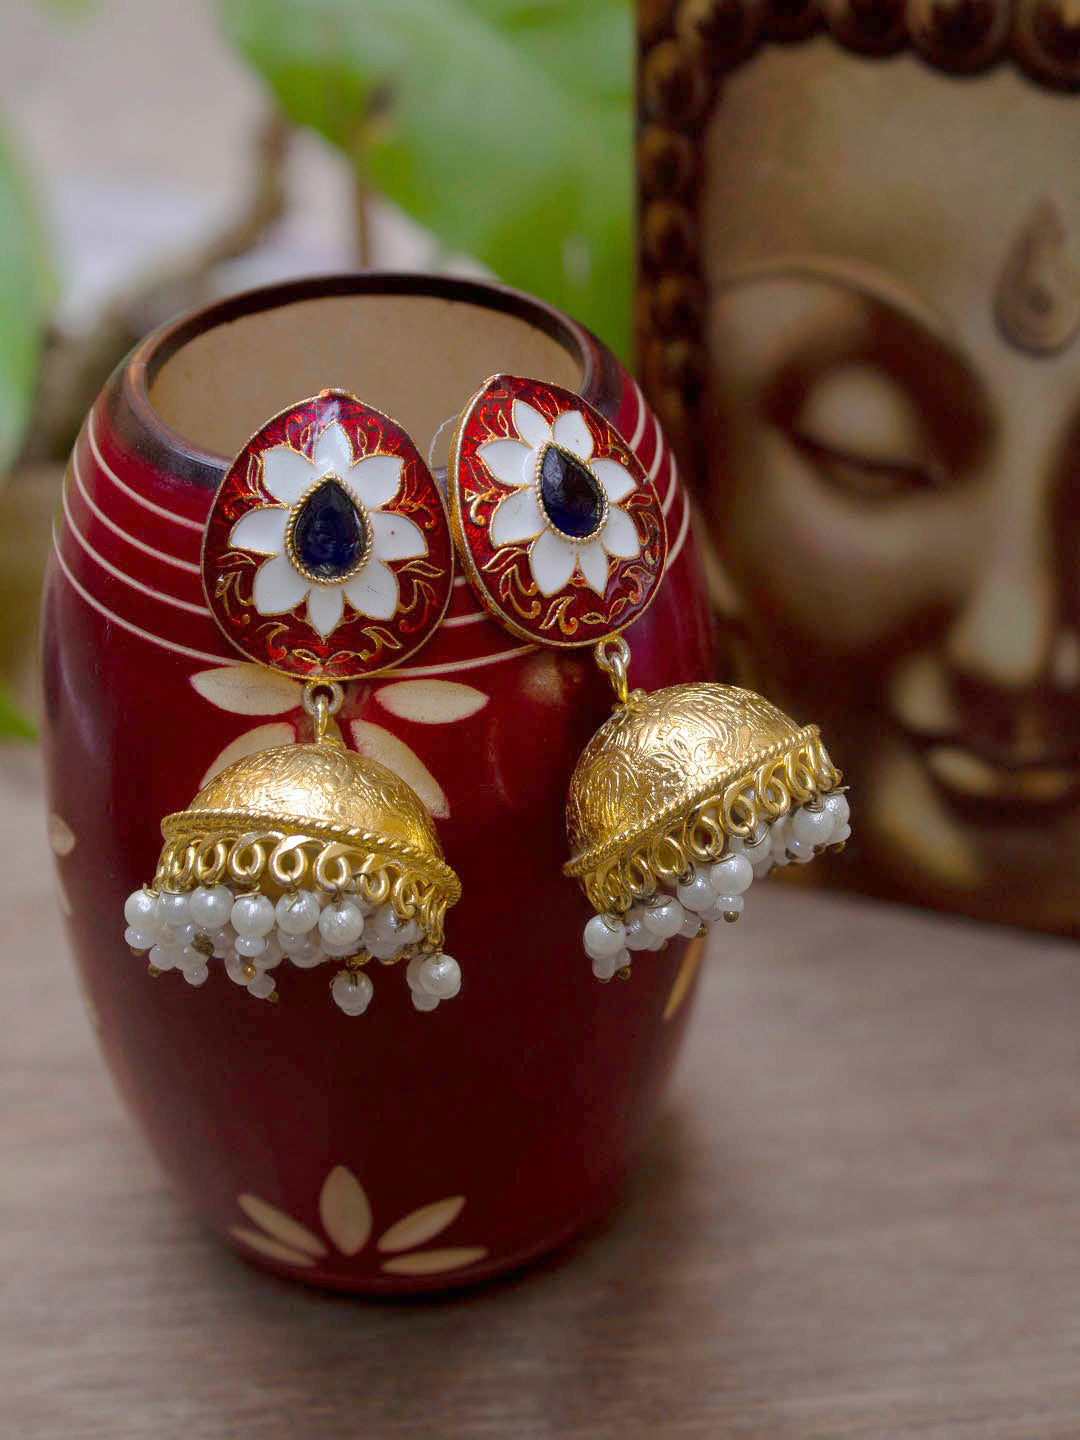 Oxidized Gold Plated Floral Design Red Color Enamel Painted With White Hanging Pearls Jhumka Earring-OXIDIZED-Earring